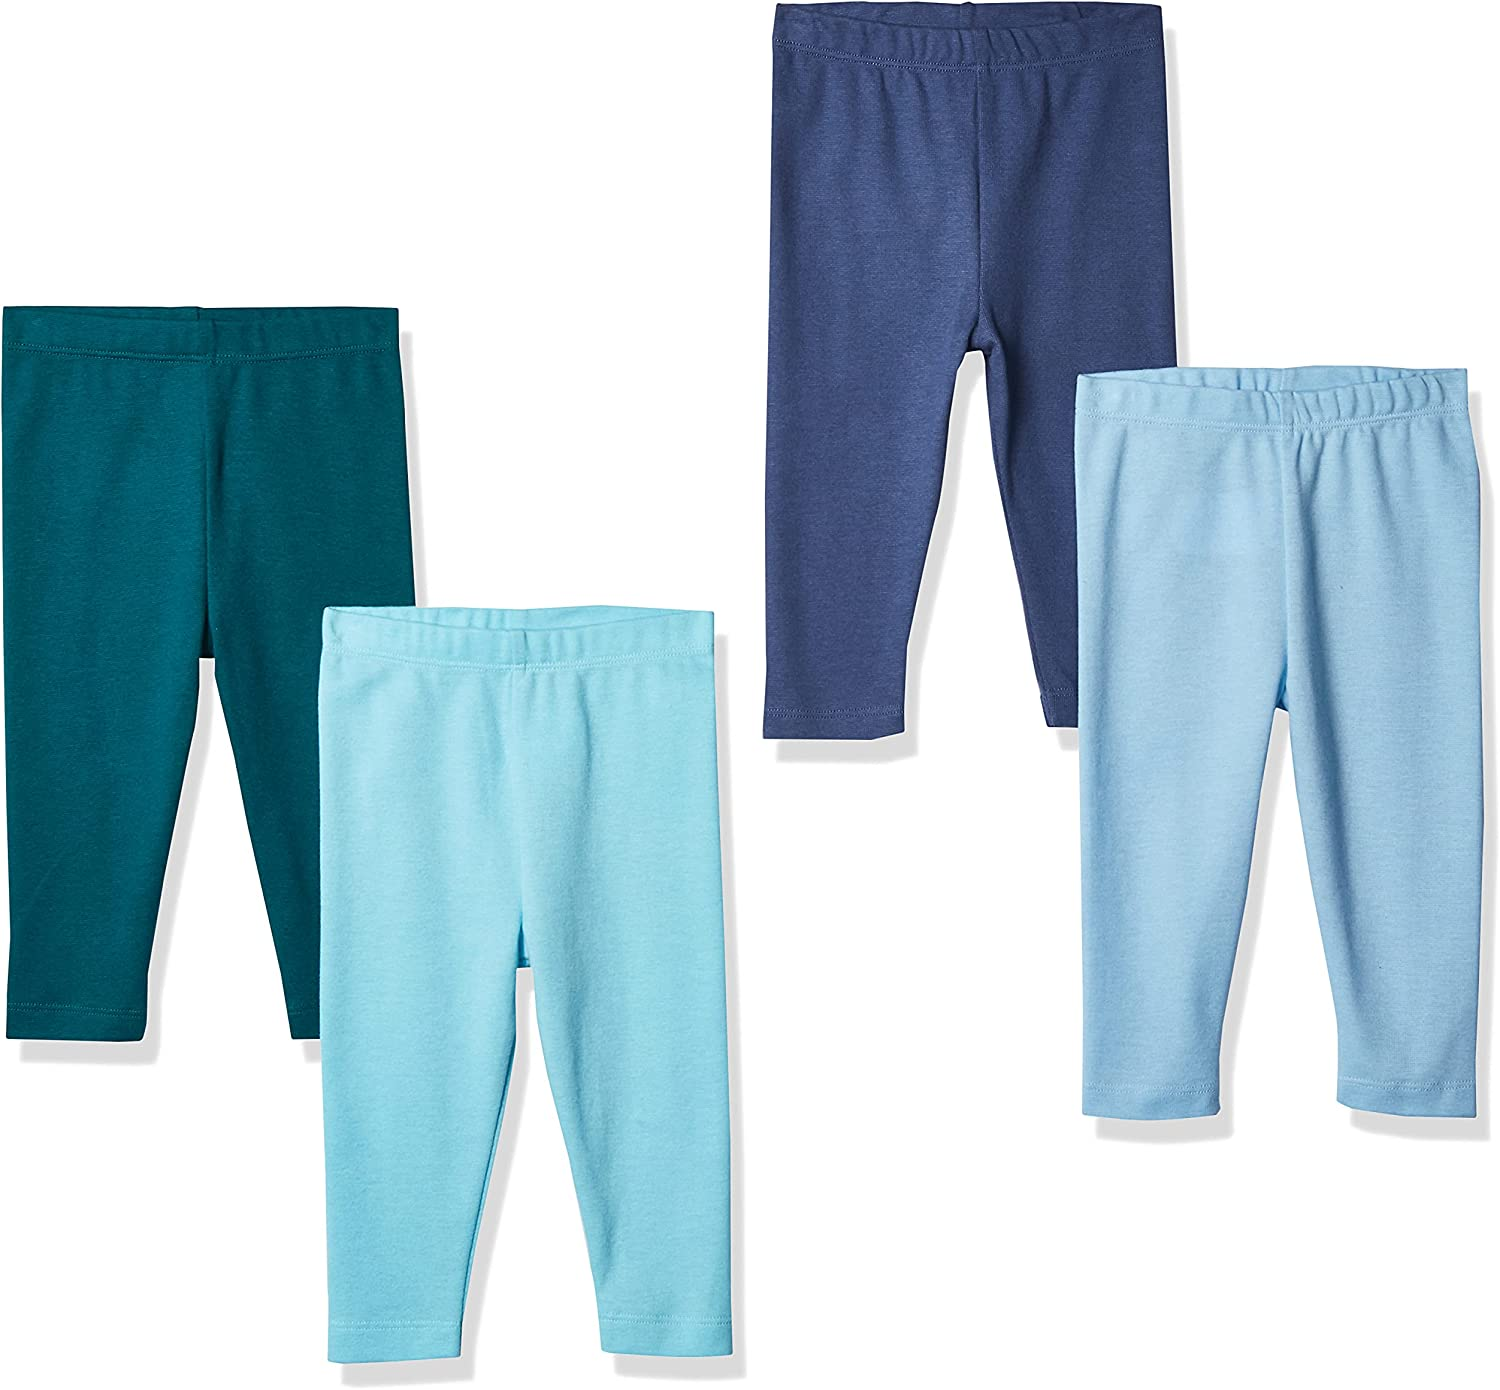 Hanes Ultimate Baby Flexy 4 Pack Knit Pants: Clothing, Shoes & Jewelry